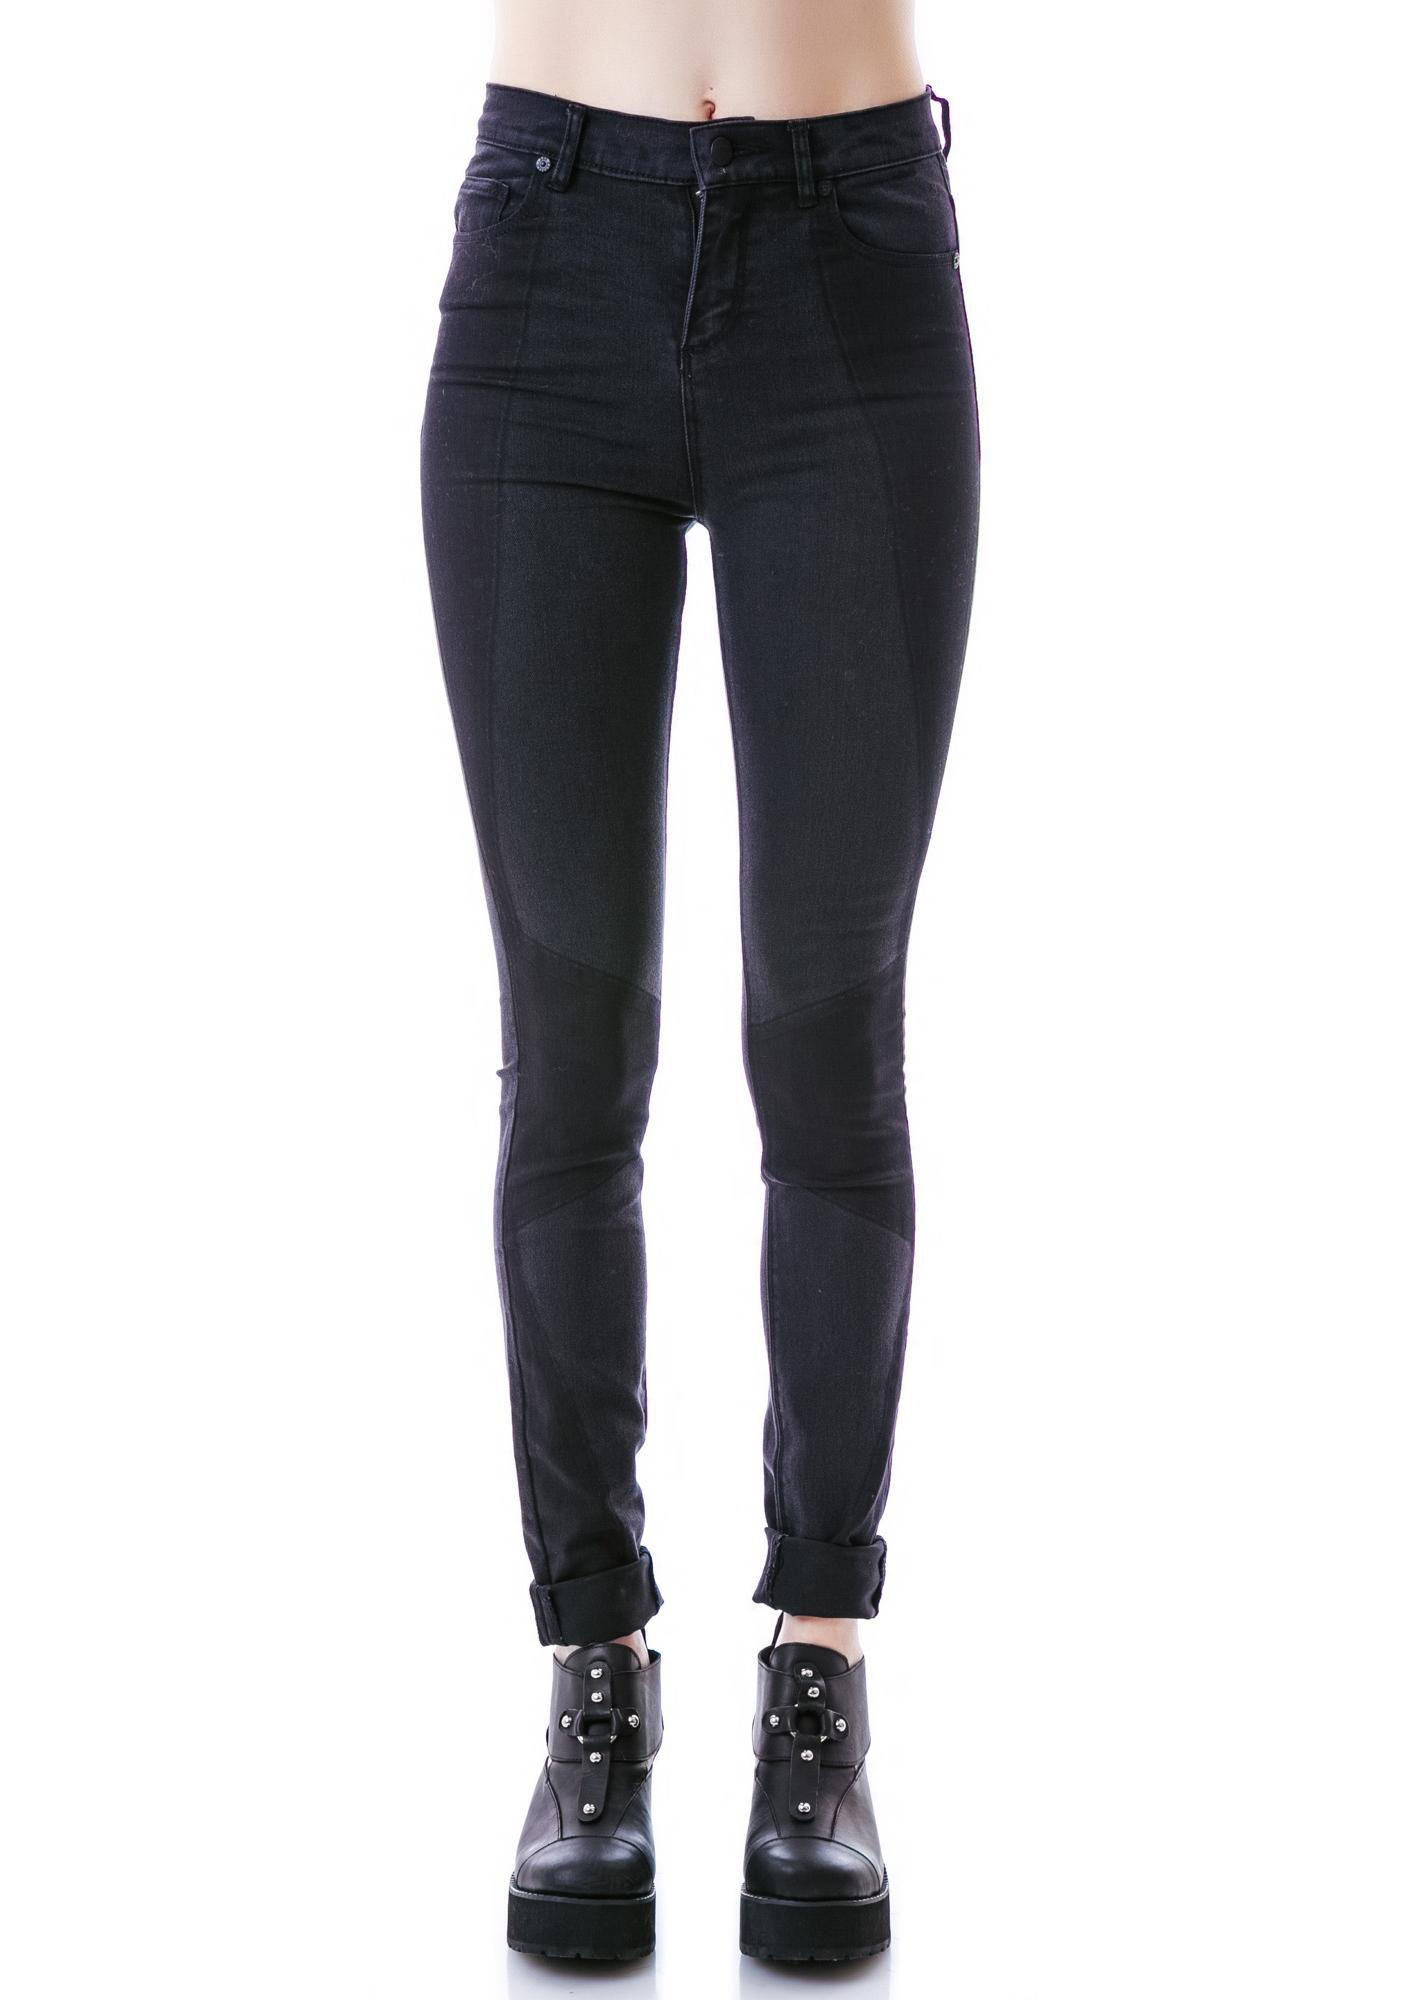 Zoe Karssen light wash skinny jeans In China Sale Online Discount 2018 New Sale Visit Visa Payment Free Shipping Recommend 89ClQm